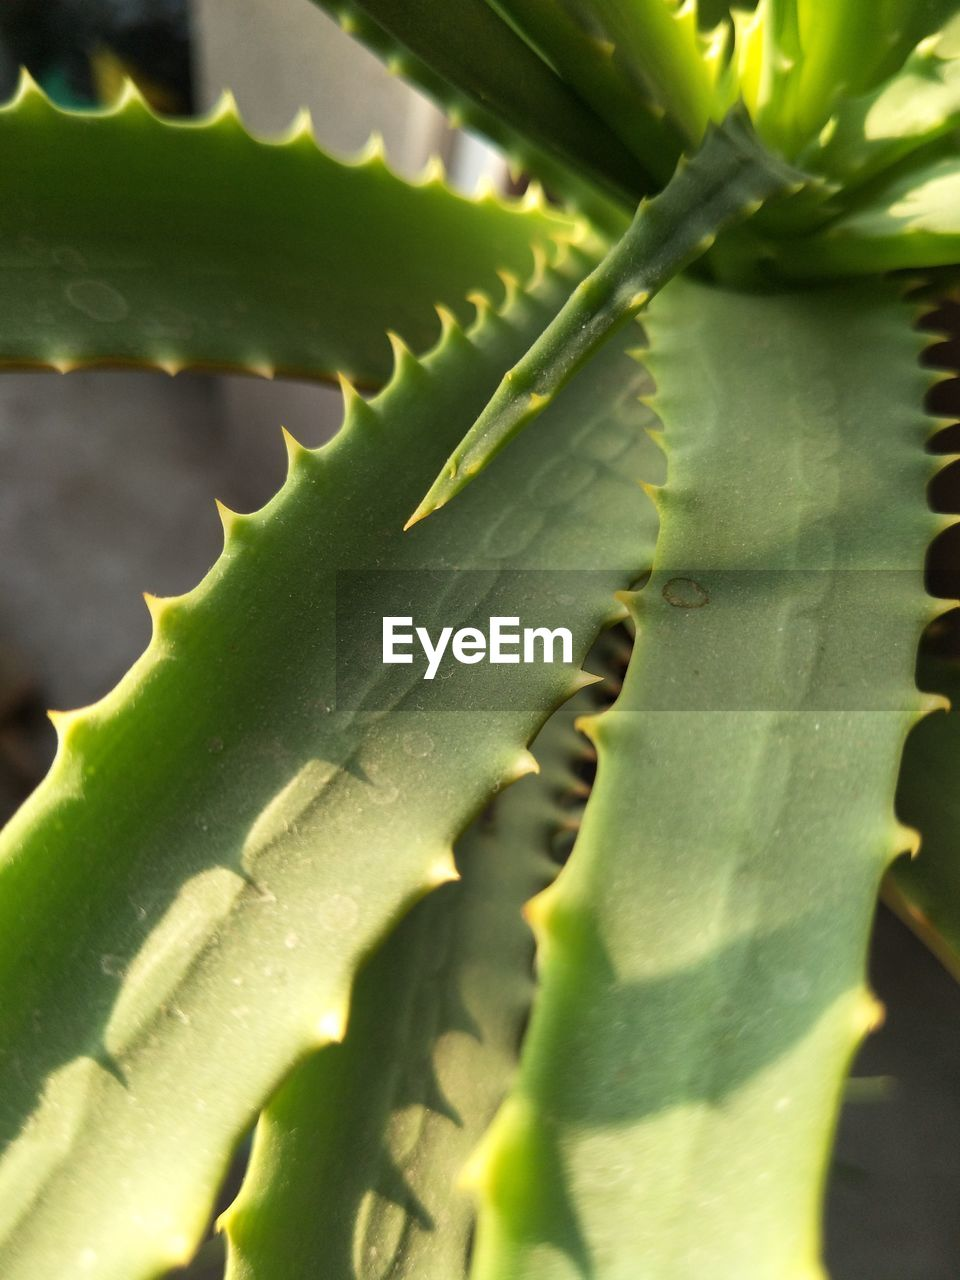 green color, aloe vera plant, growth, aloe, leaf, close-up, thorn, healthcare and medicine, plant, nature, no people, day, herbal medicine, outdoors, beauty in nature